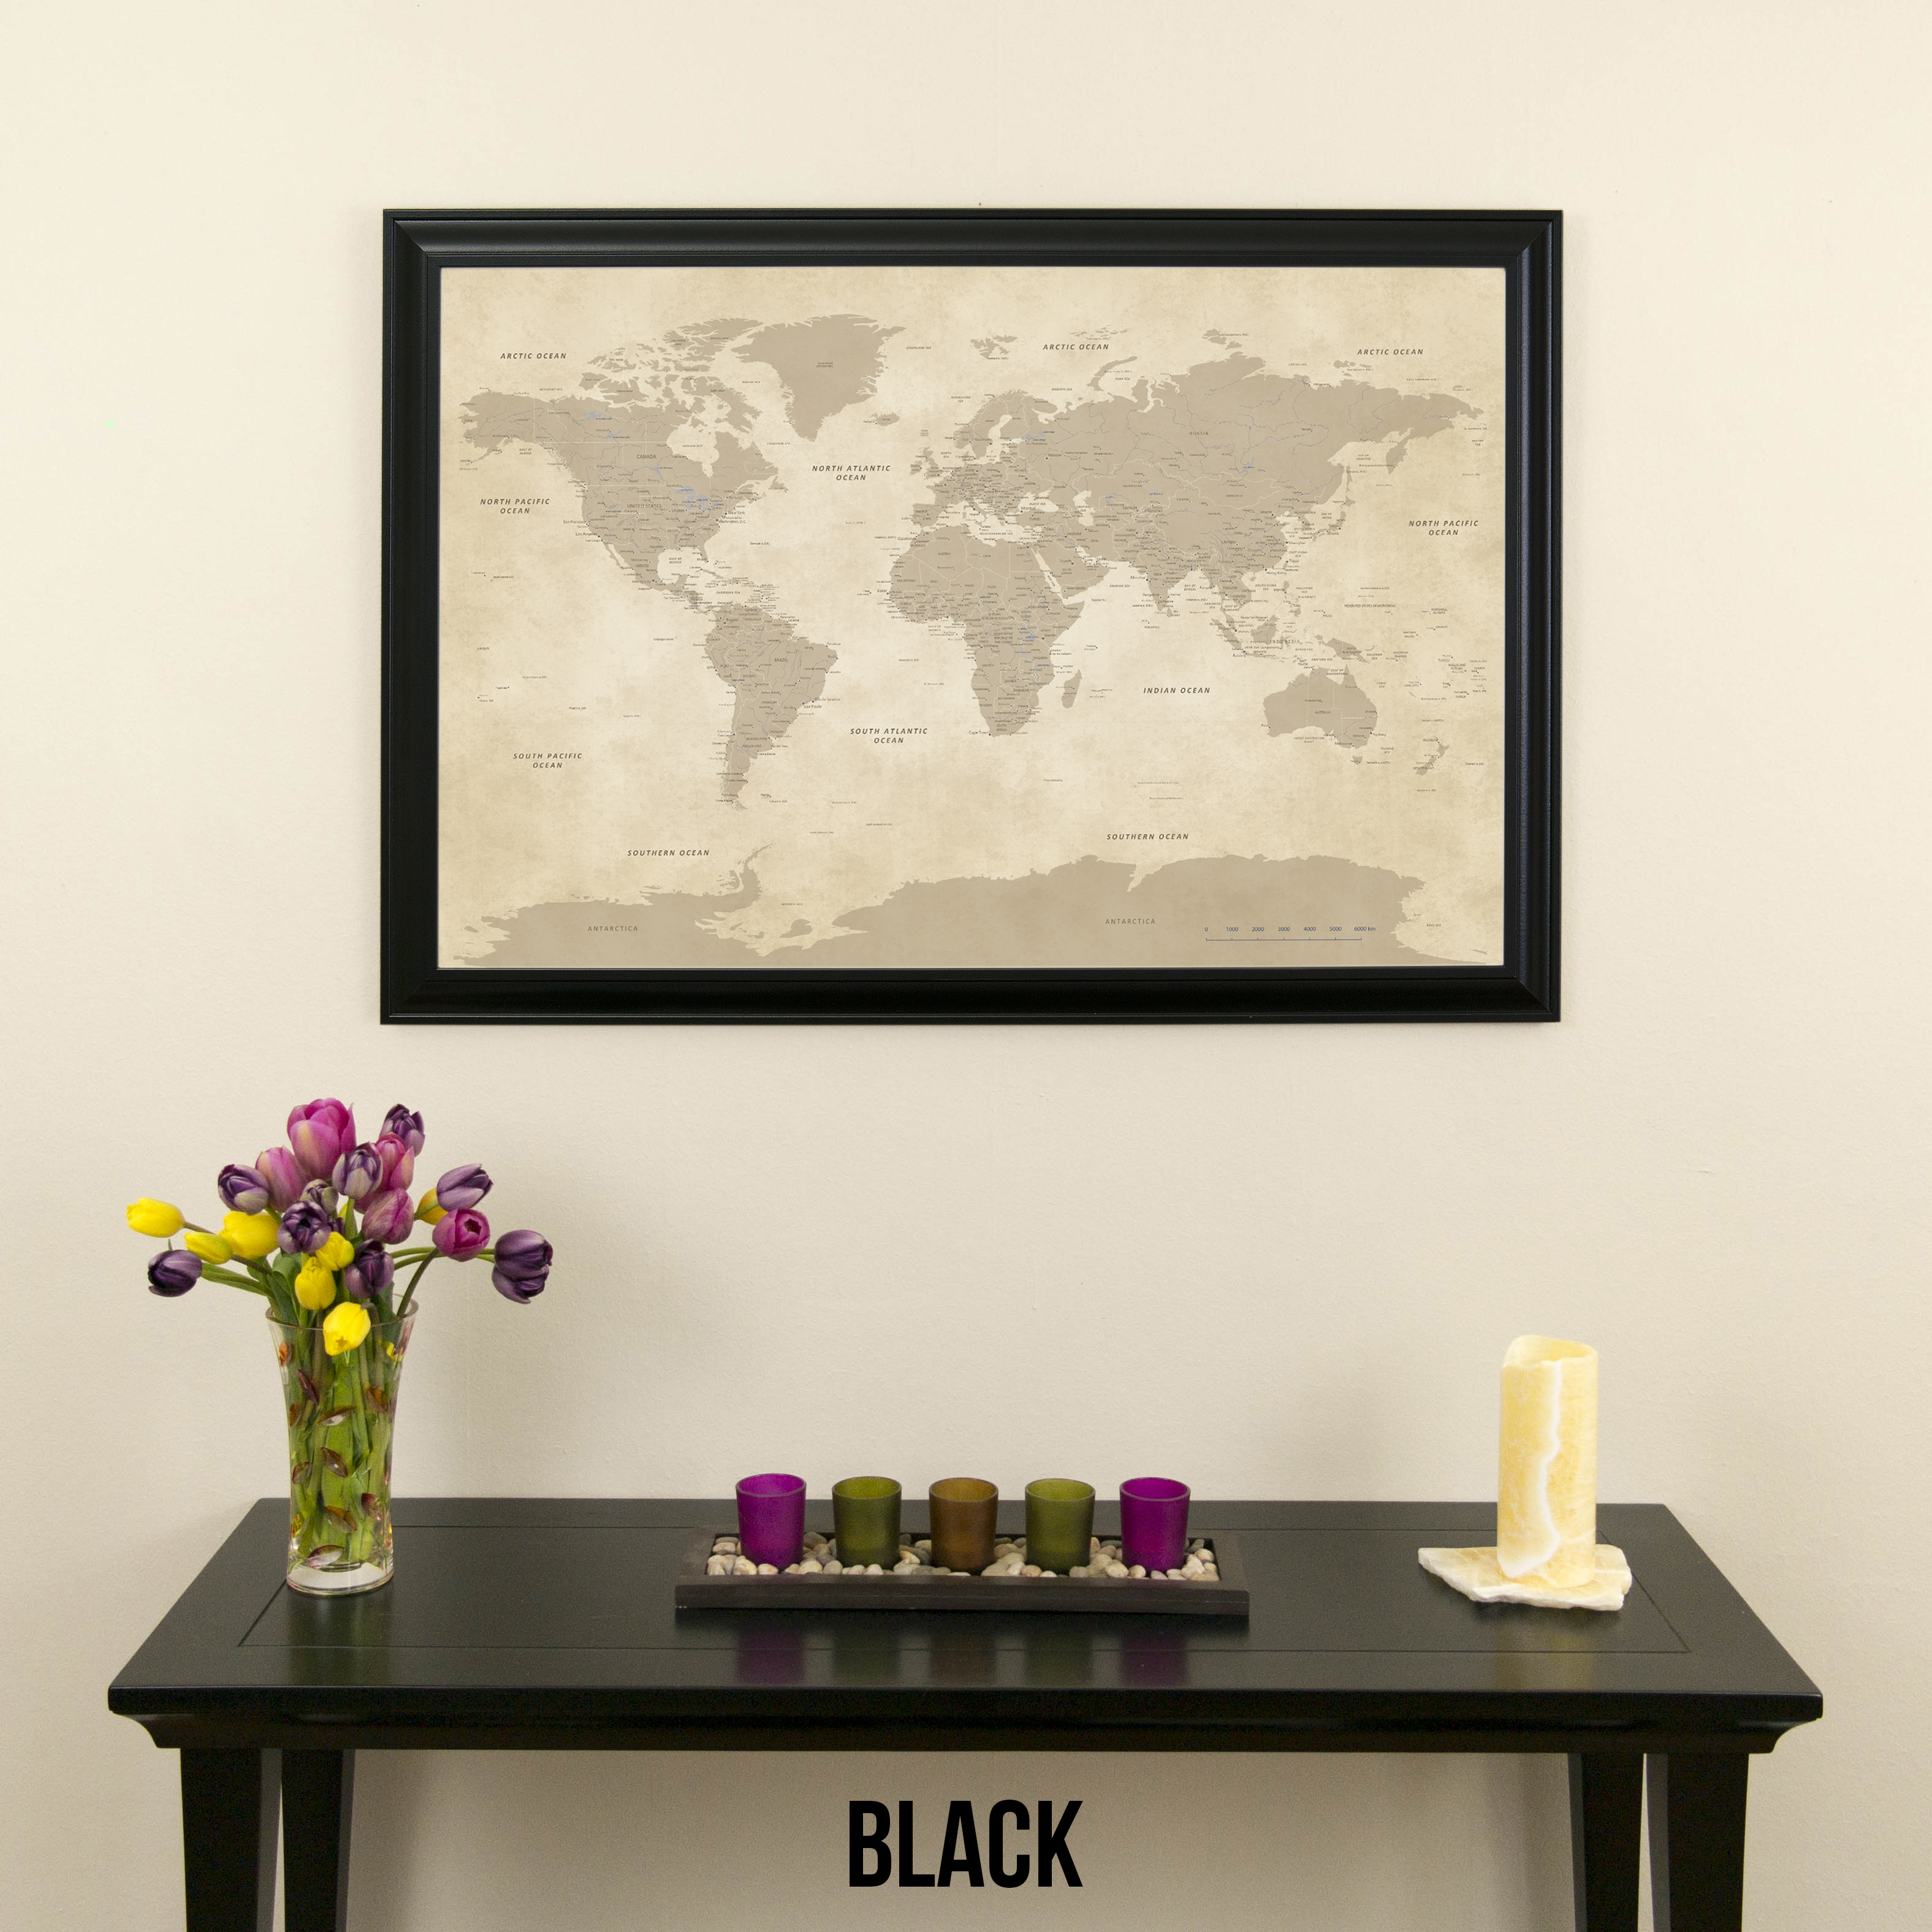 811502978568 Vintage World Push Pin Travel Map with Rustic Black Frame - Walmart.com